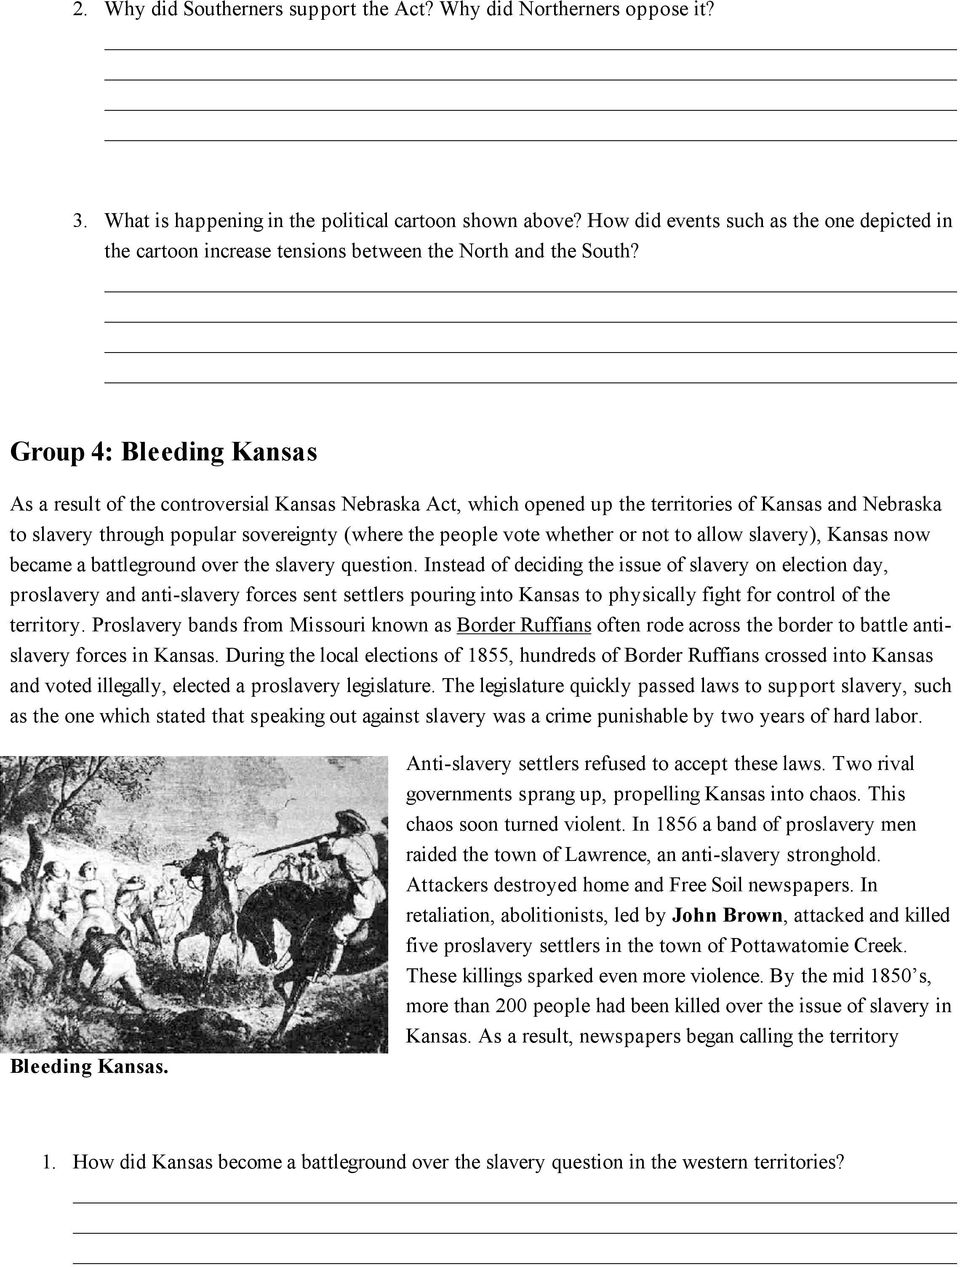 Group 4: Bleeding Kansas As a result of the controversial Kansas Nebraska Act, which opened up the territories of Kansas and Nebraska to slavery through popular sovereignty (where the people vote